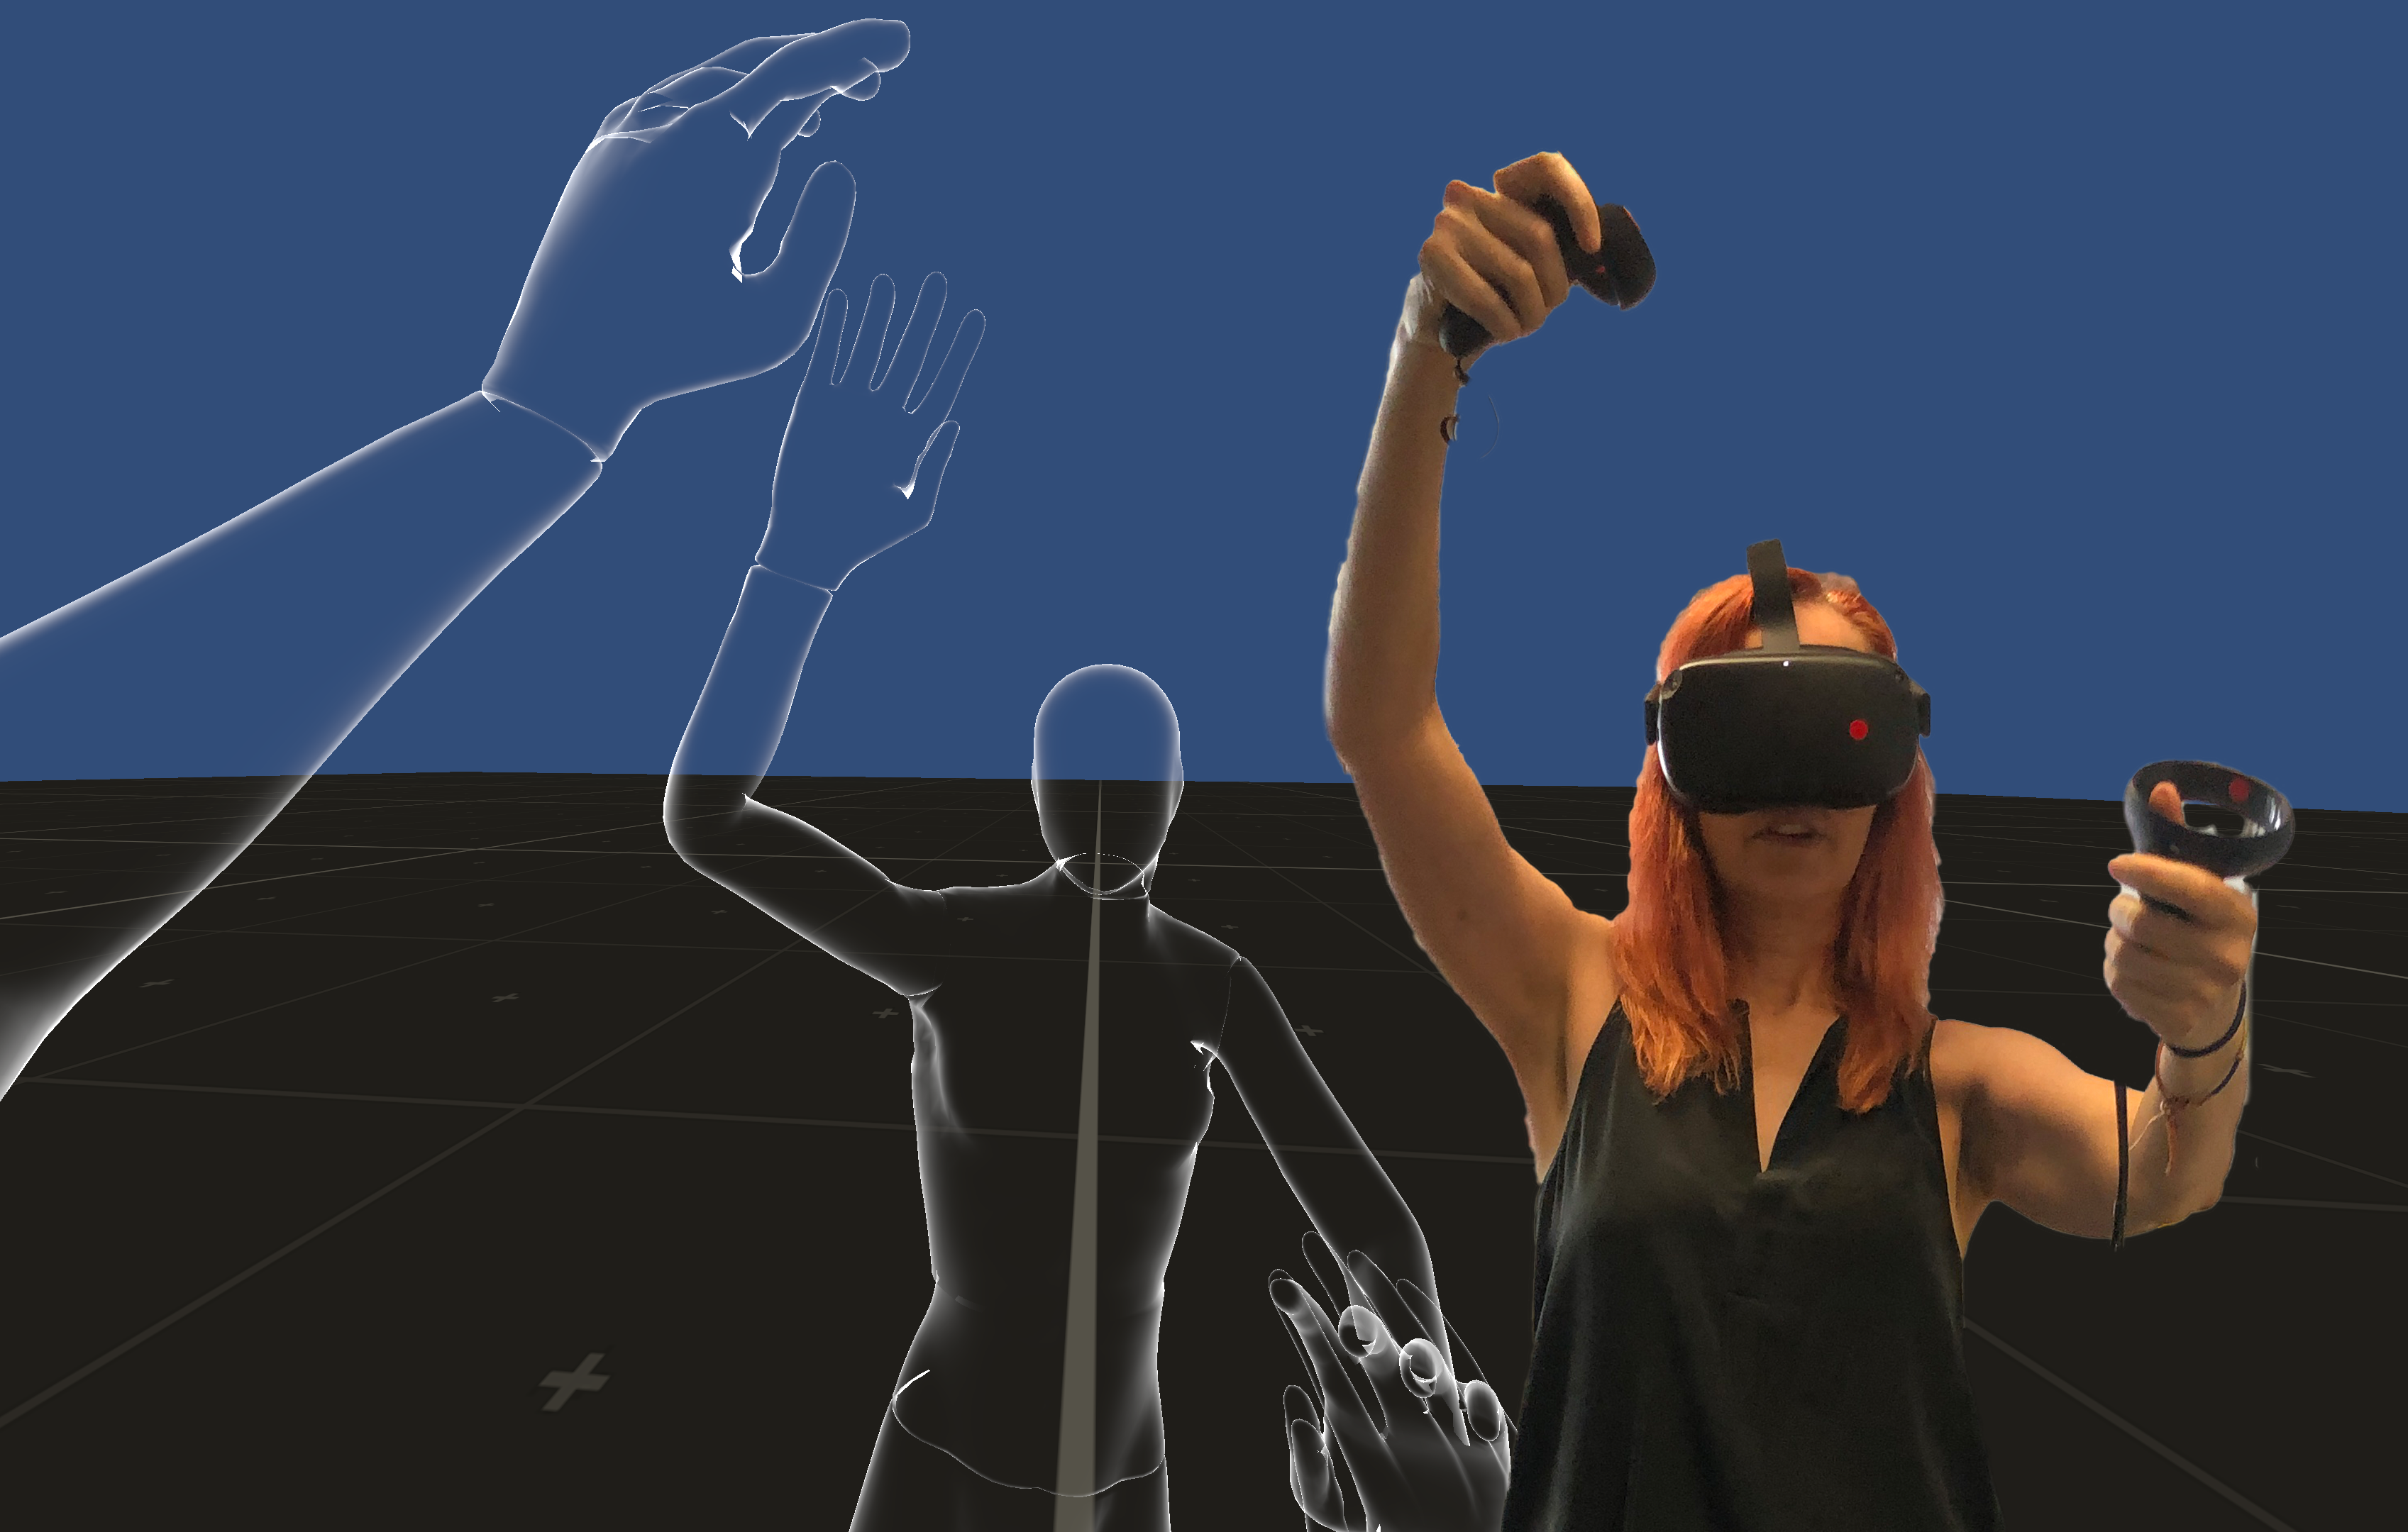 Body mapping session in Virtual Reality using EmbodiMap developed by UNSW fEEL Lab Scientia Professor Jill Bennett and lead immersive media designer Volker Kuchelmeister. Image: Jill Bennett